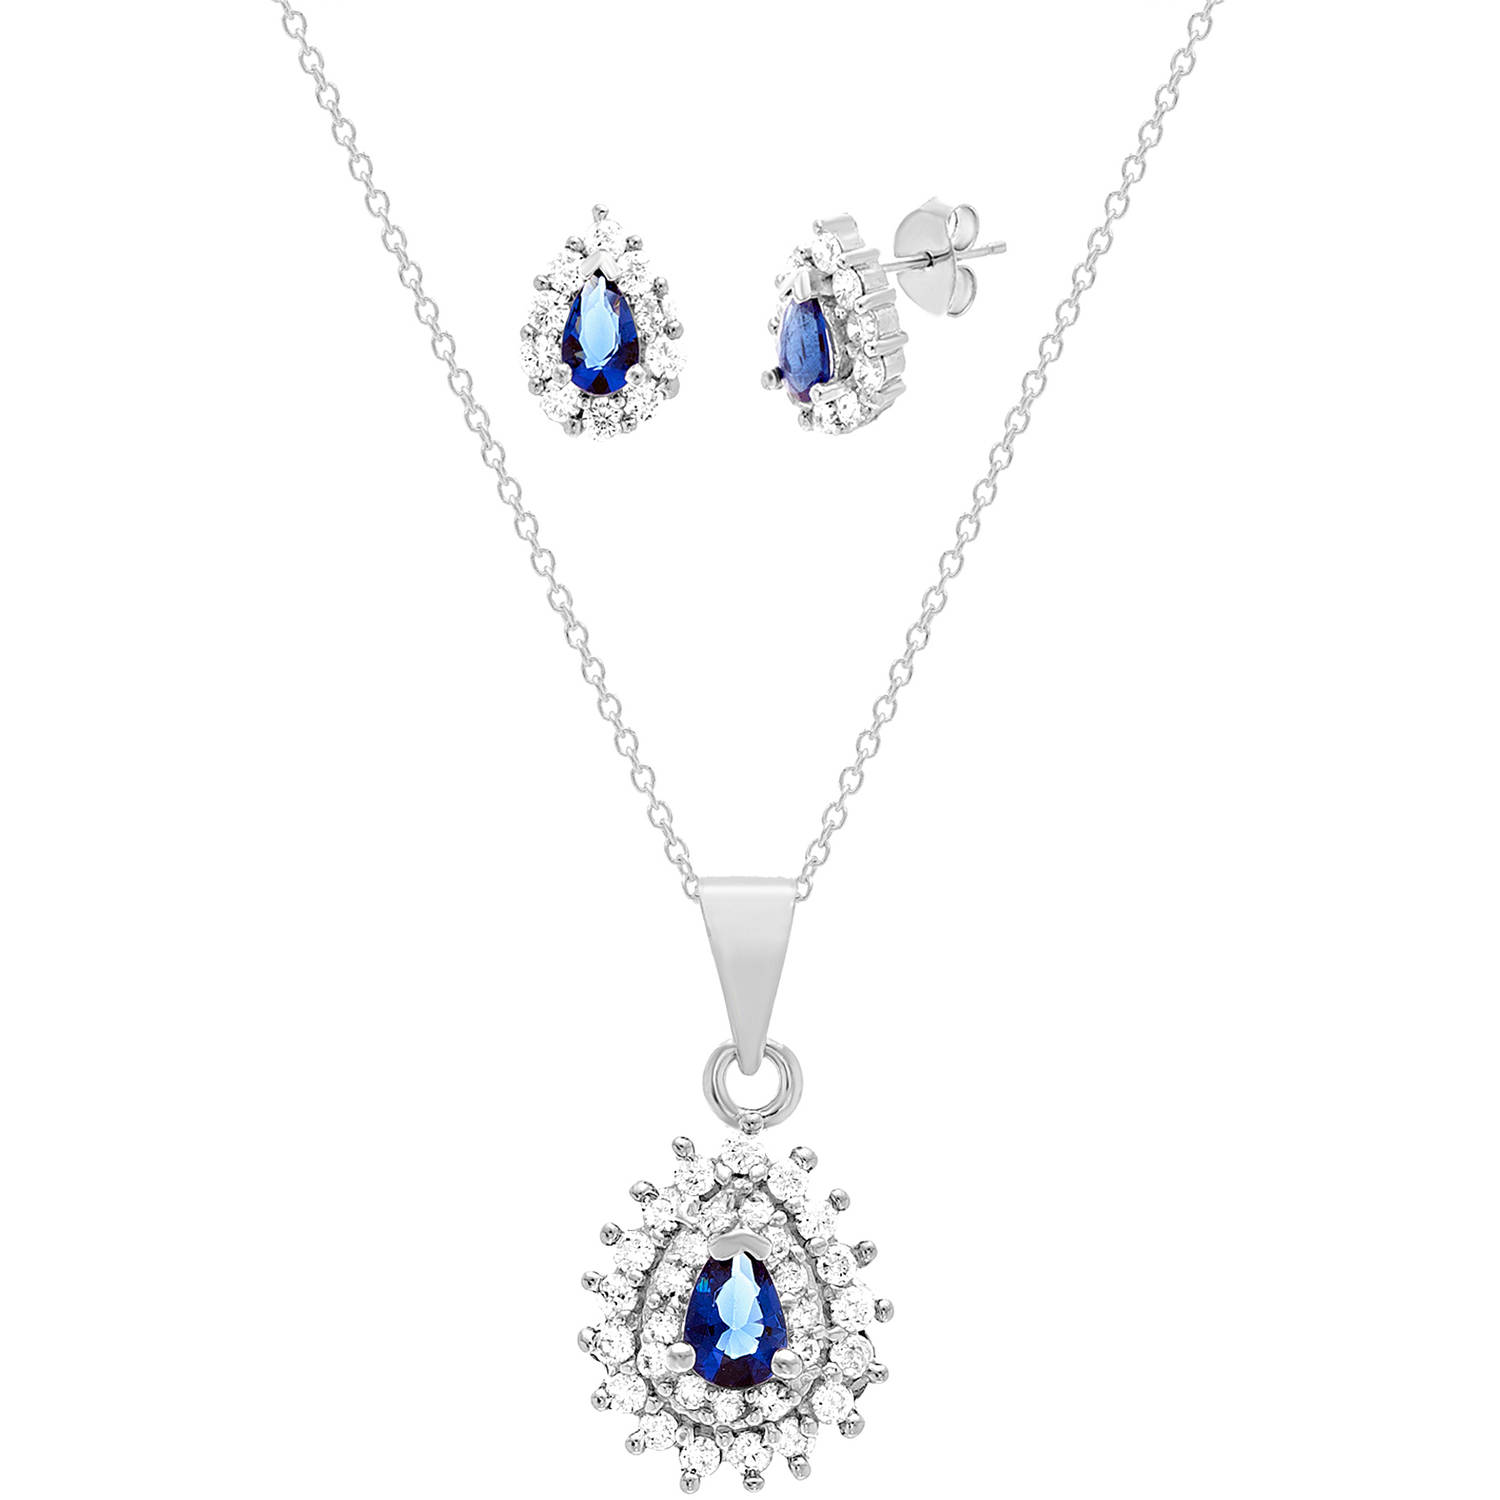 Lesa Michele Lab Created Sapphire Teardrop Jewelry Set In Sterling Silver